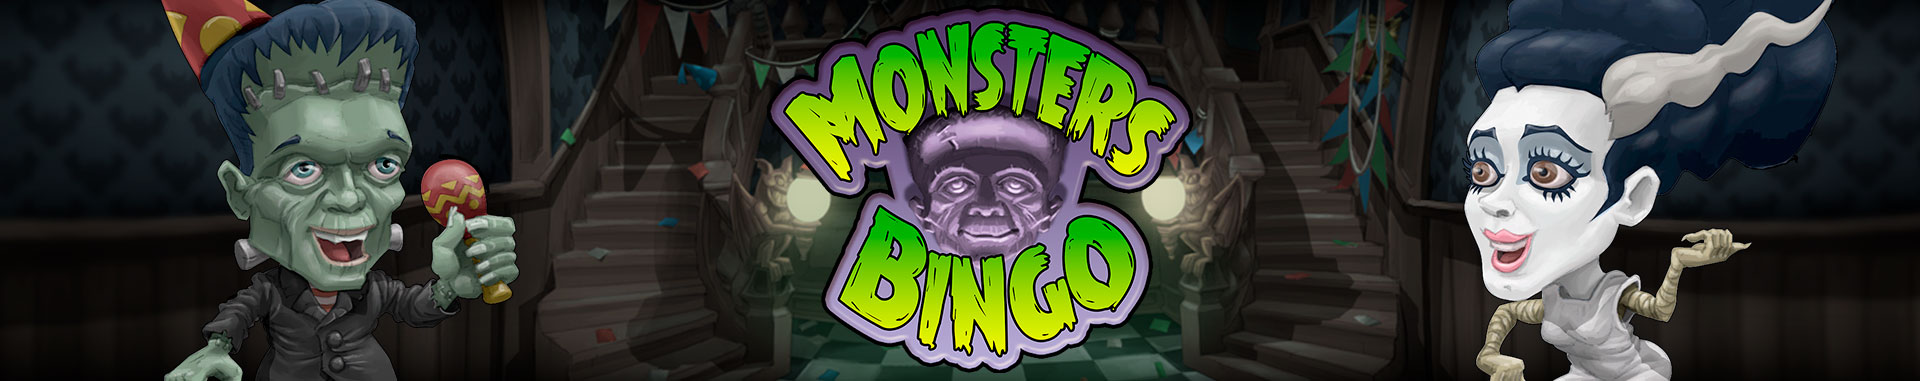 Spiele Monster Bingo - Video Slots Online